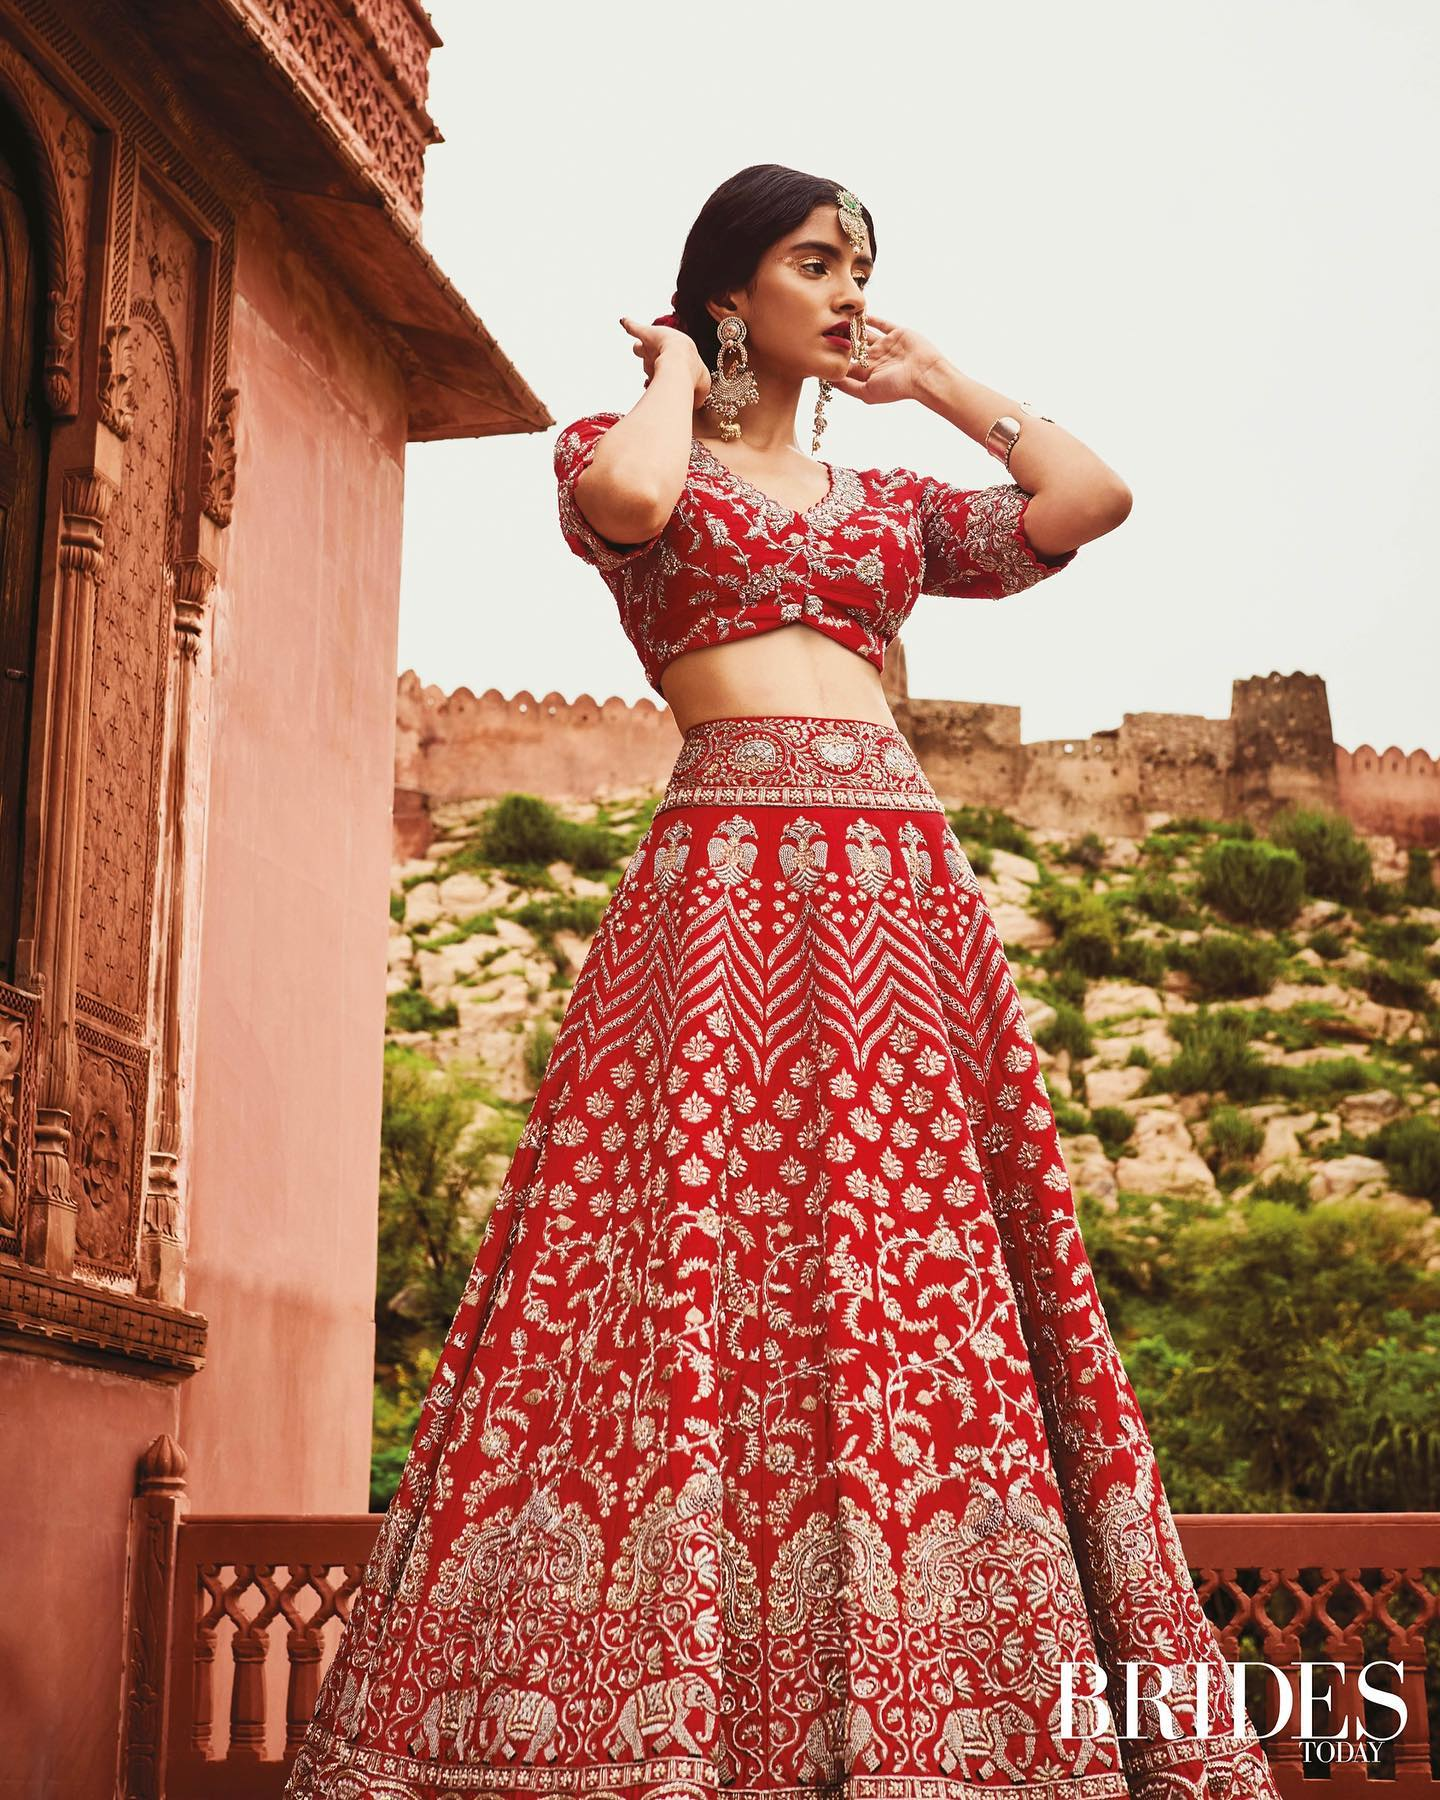 Mrunalini Rao and team delighted to be featured in Brides todayin latest issue that celebrates the colour of love.  Seen here is Vana Indrani Lehenga.  2021-10-15